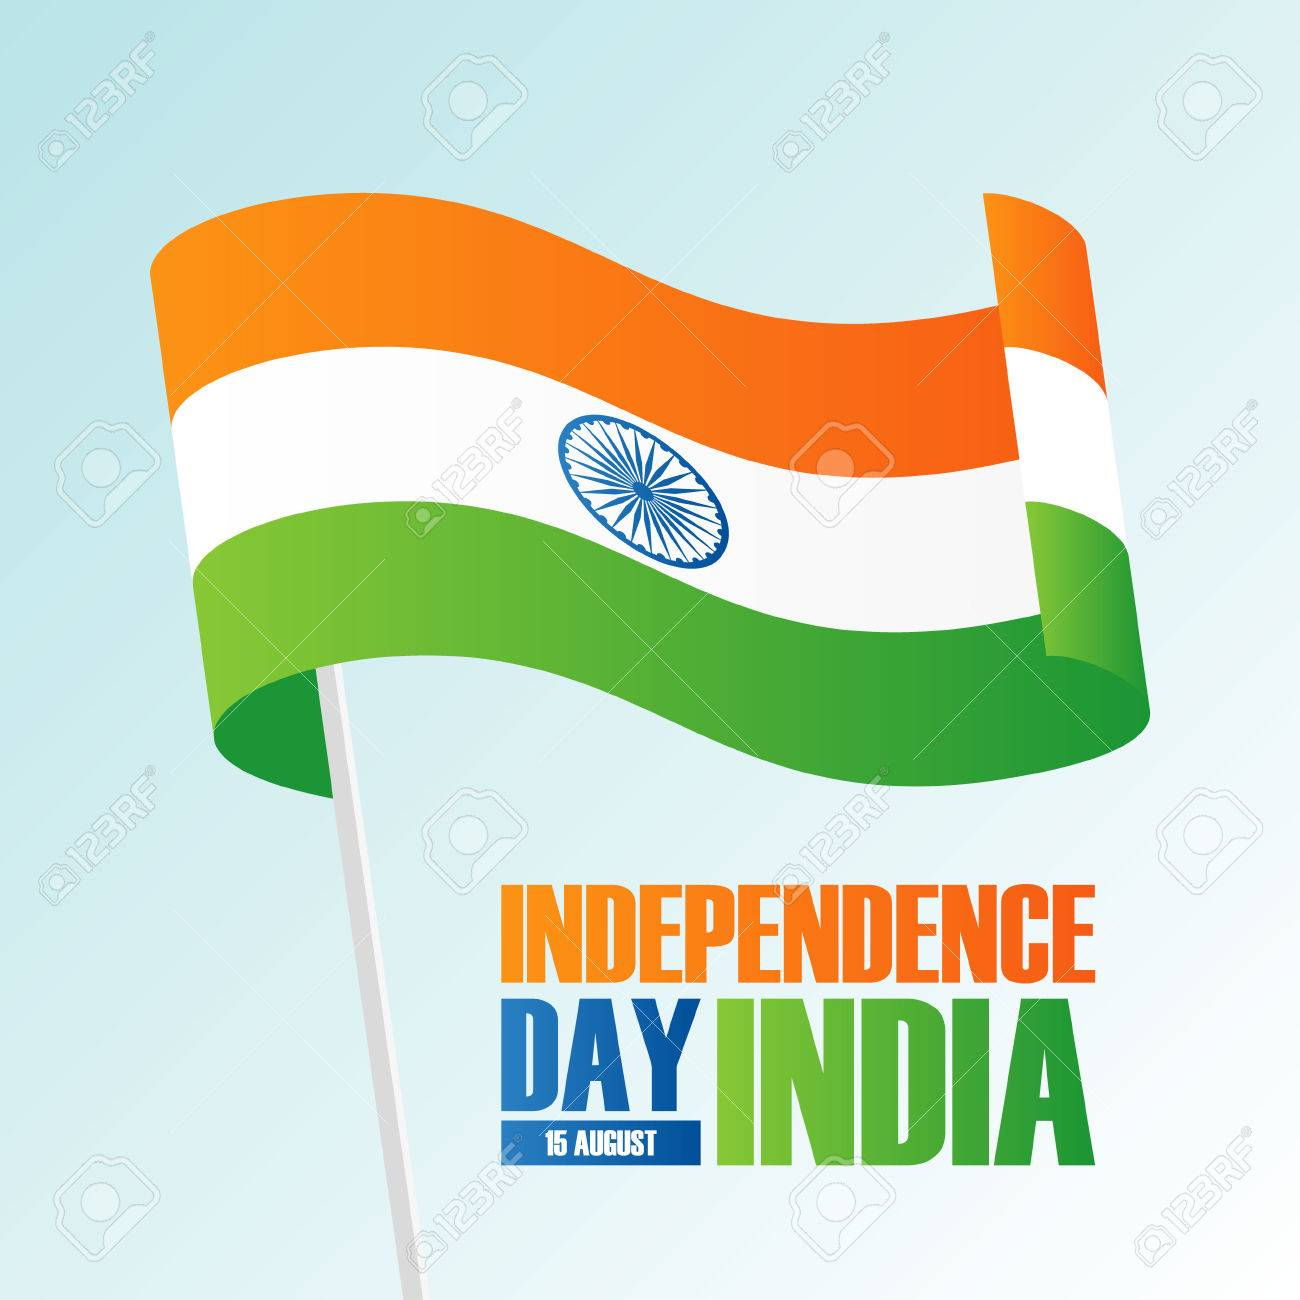 India Happy Independence Day 15 August Greeting Card With Waving